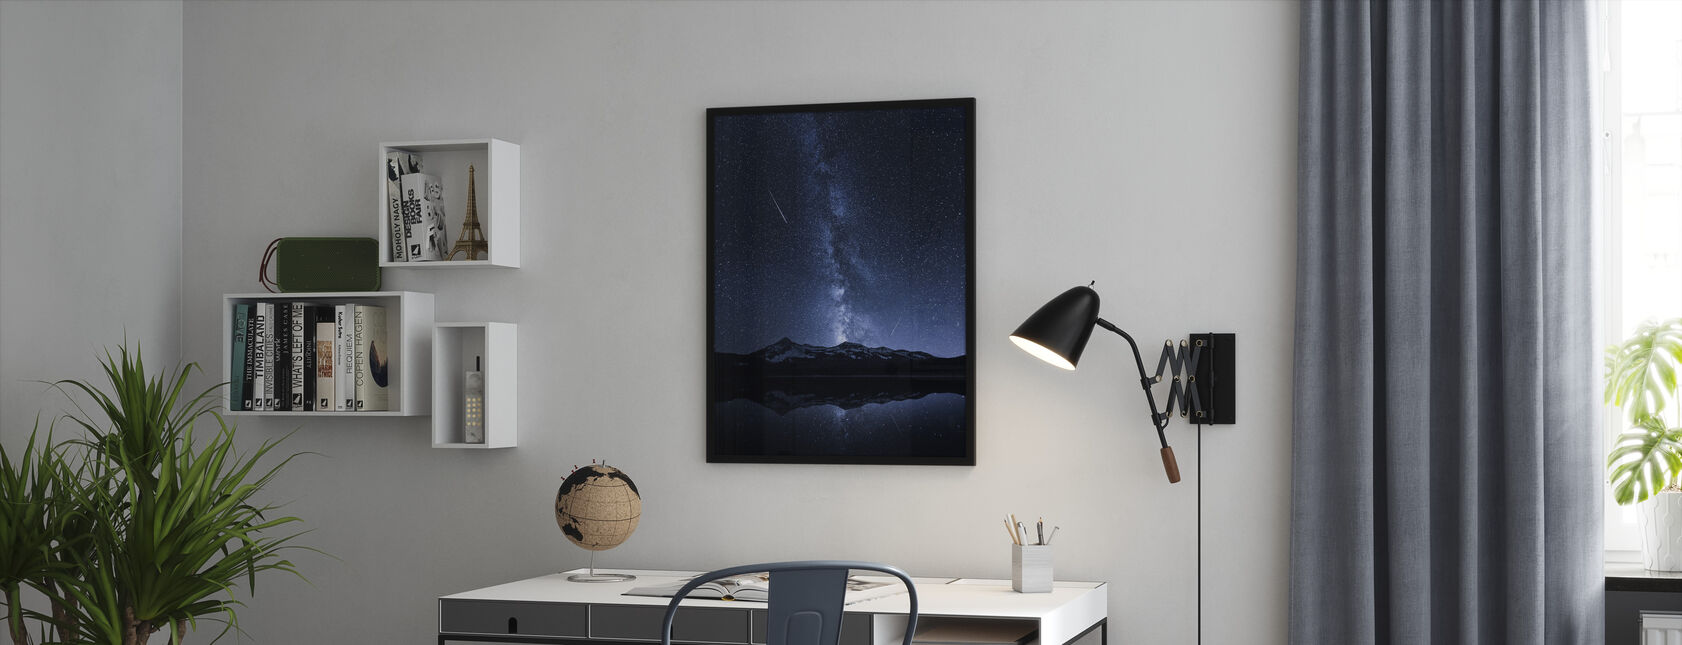 Galaxies Reflection - Framed print - Office